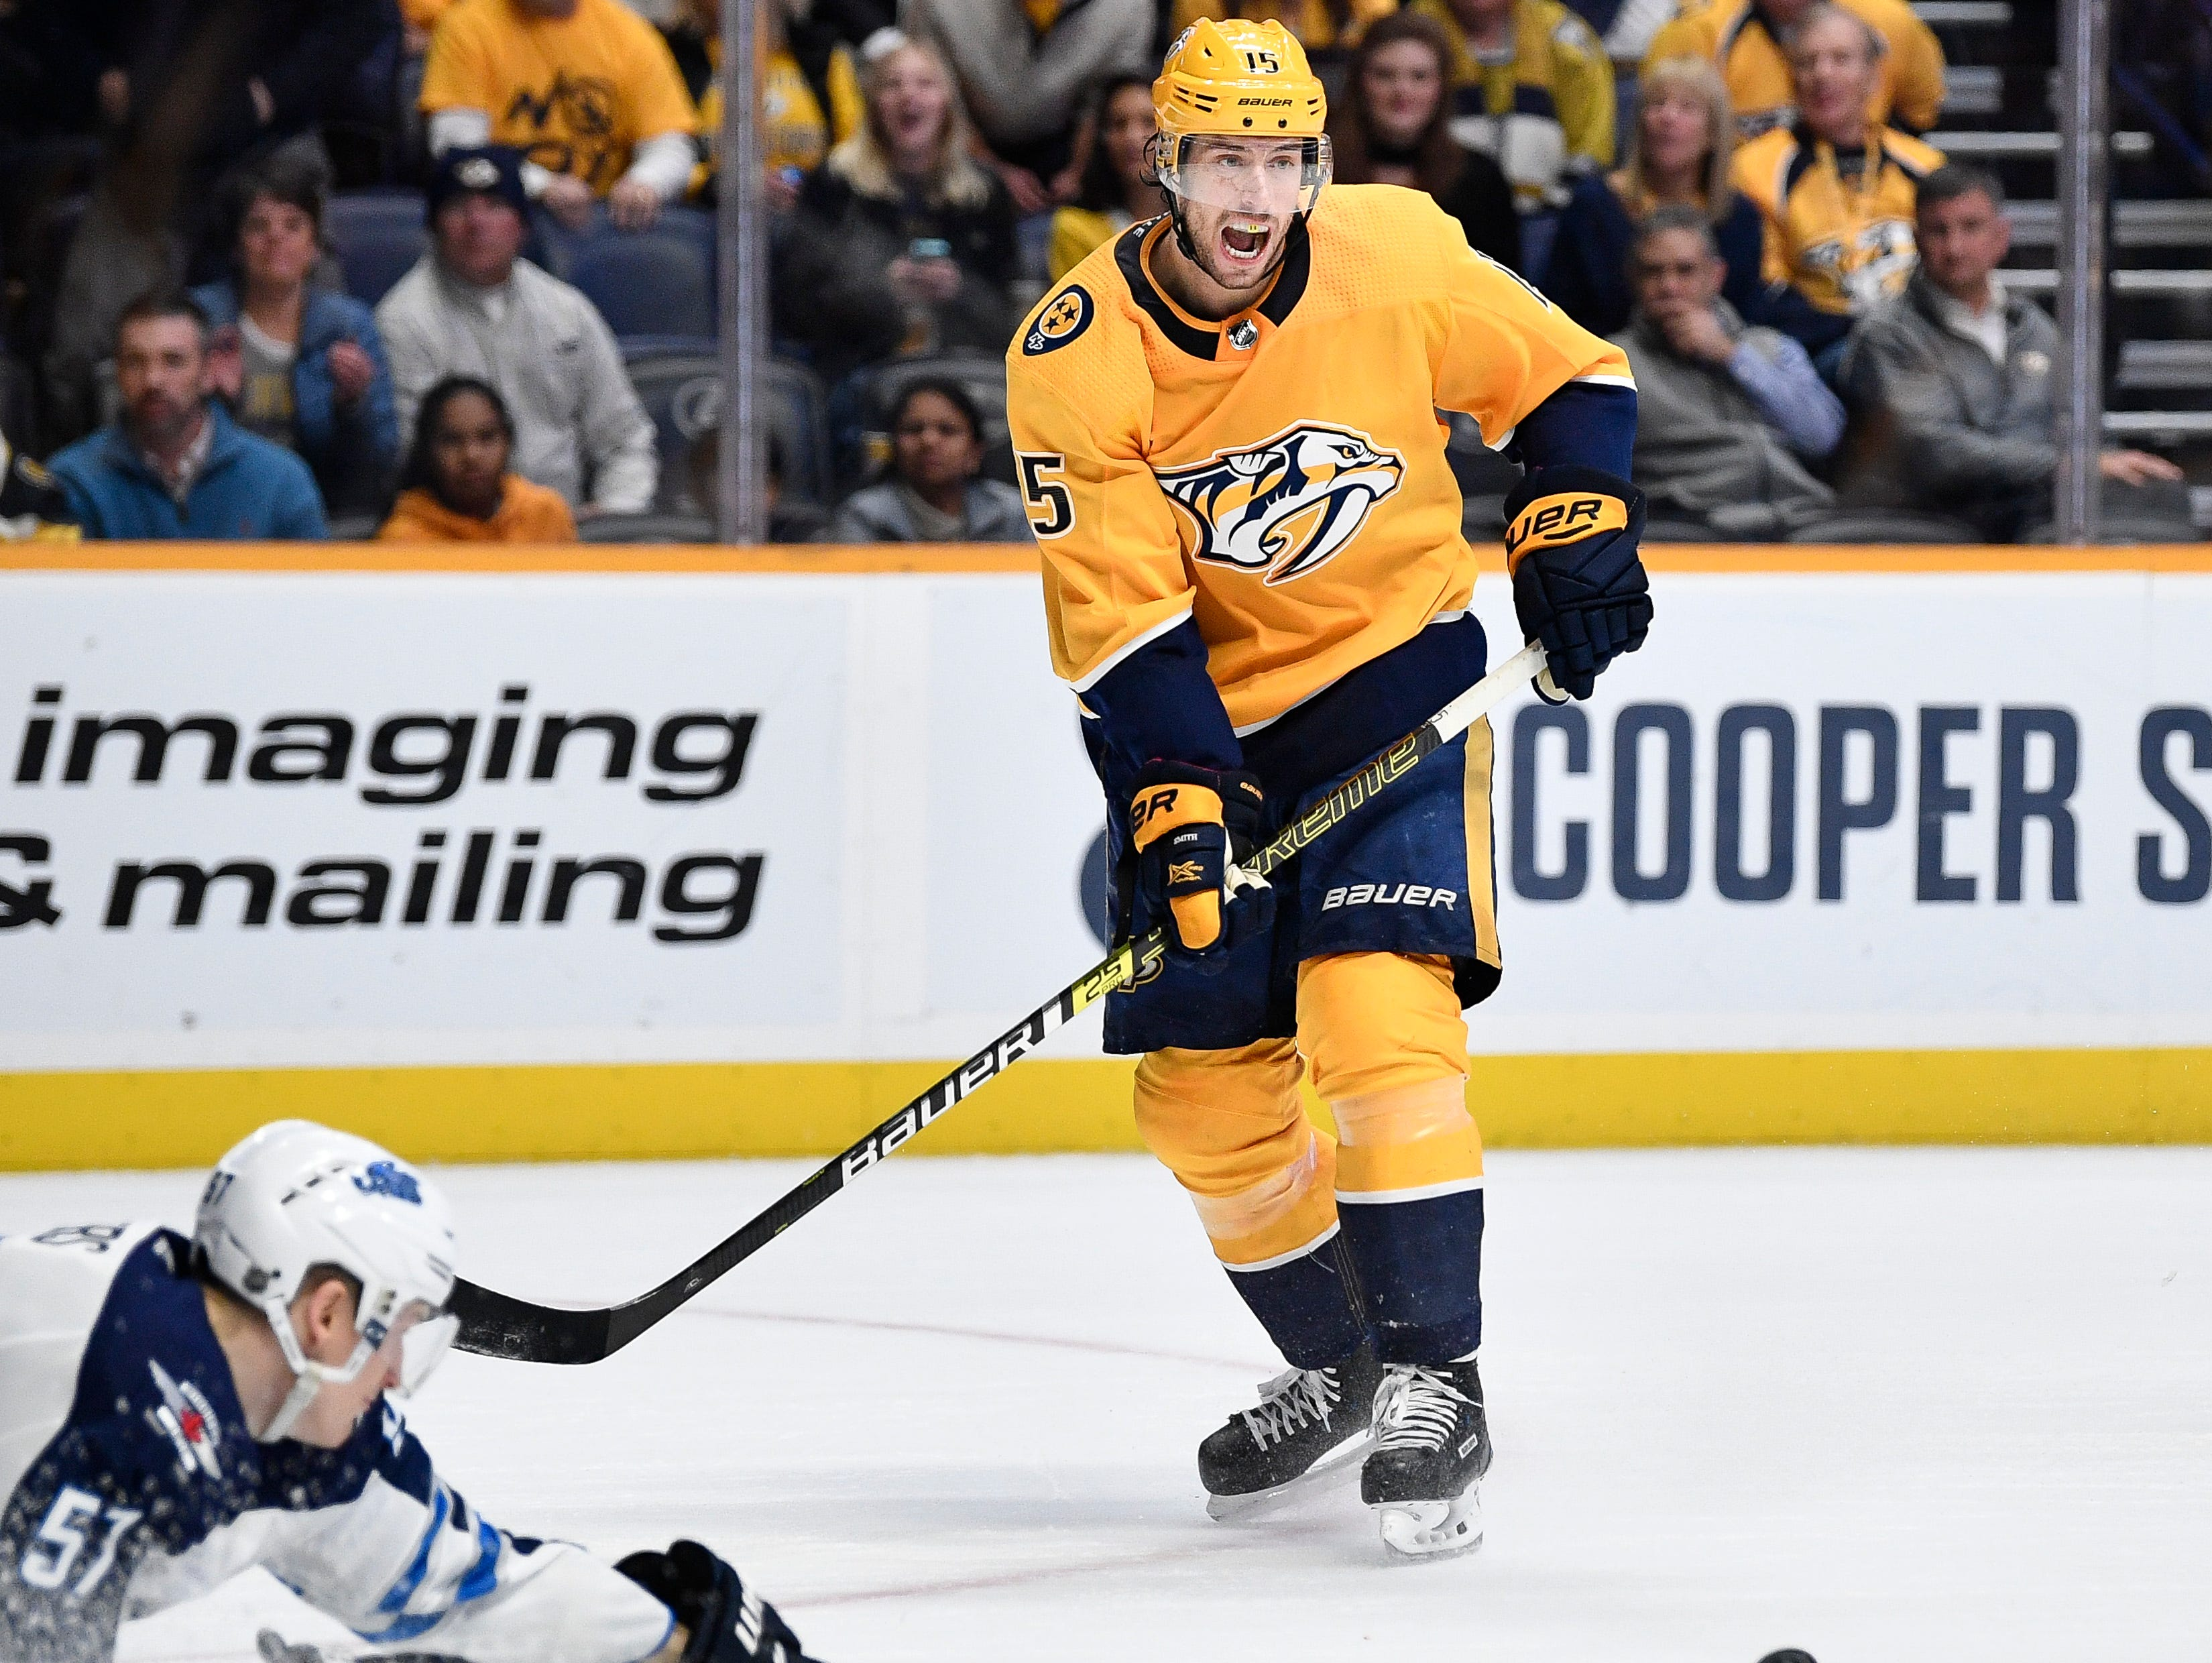 Nashville Predators right wing Craig Smith (15) has a pass deflected by Winnipeg Jets defenseman Tyler Myers (57) during the first period at Bridgestone Arena in Nashville, Tenn., Thursday, Jan. 17, 2019.